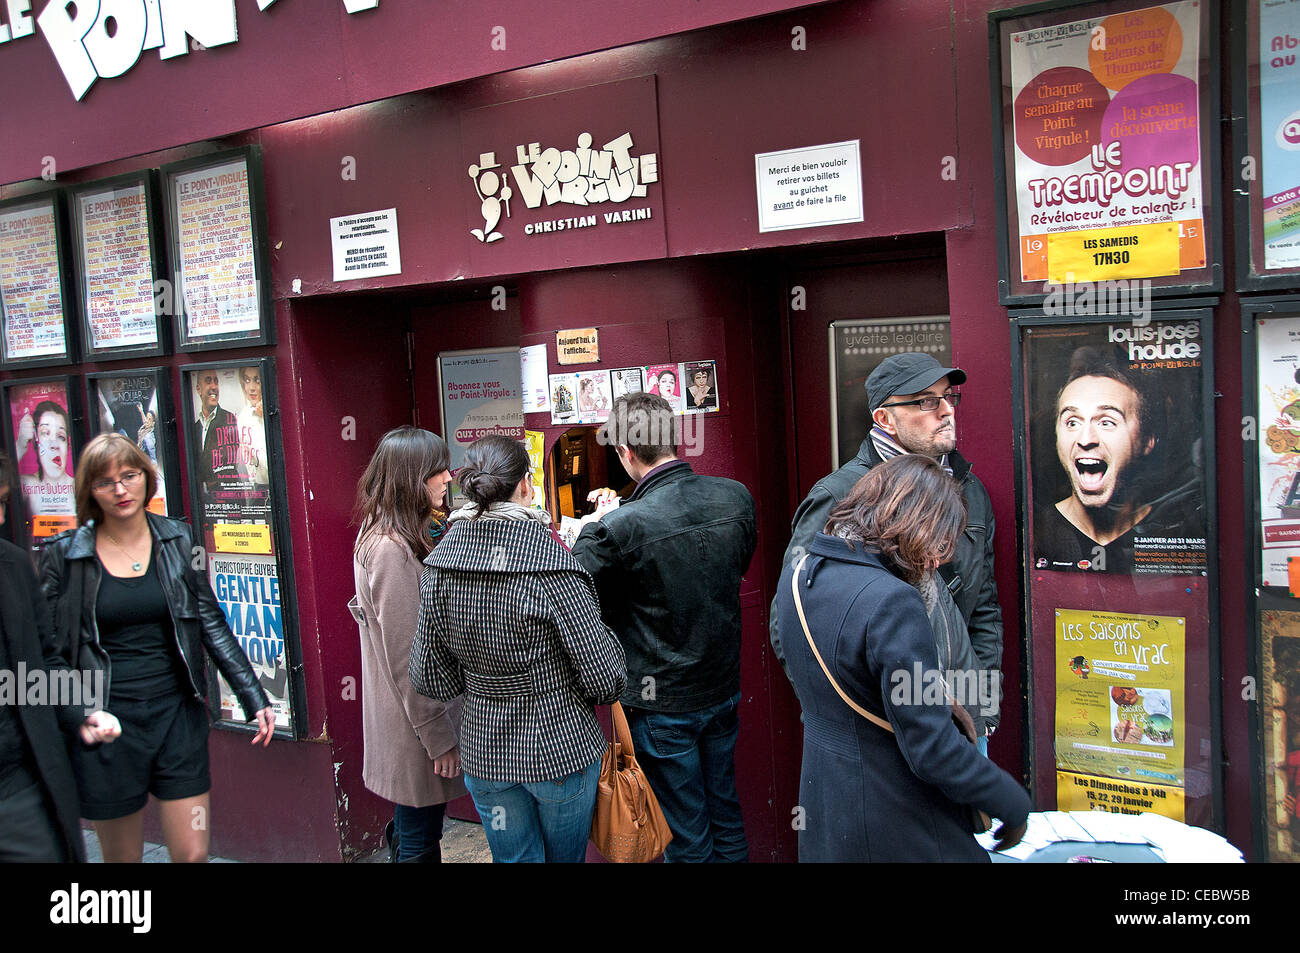 Theater Box Ticket Shop Marais Paris France - Stock Image